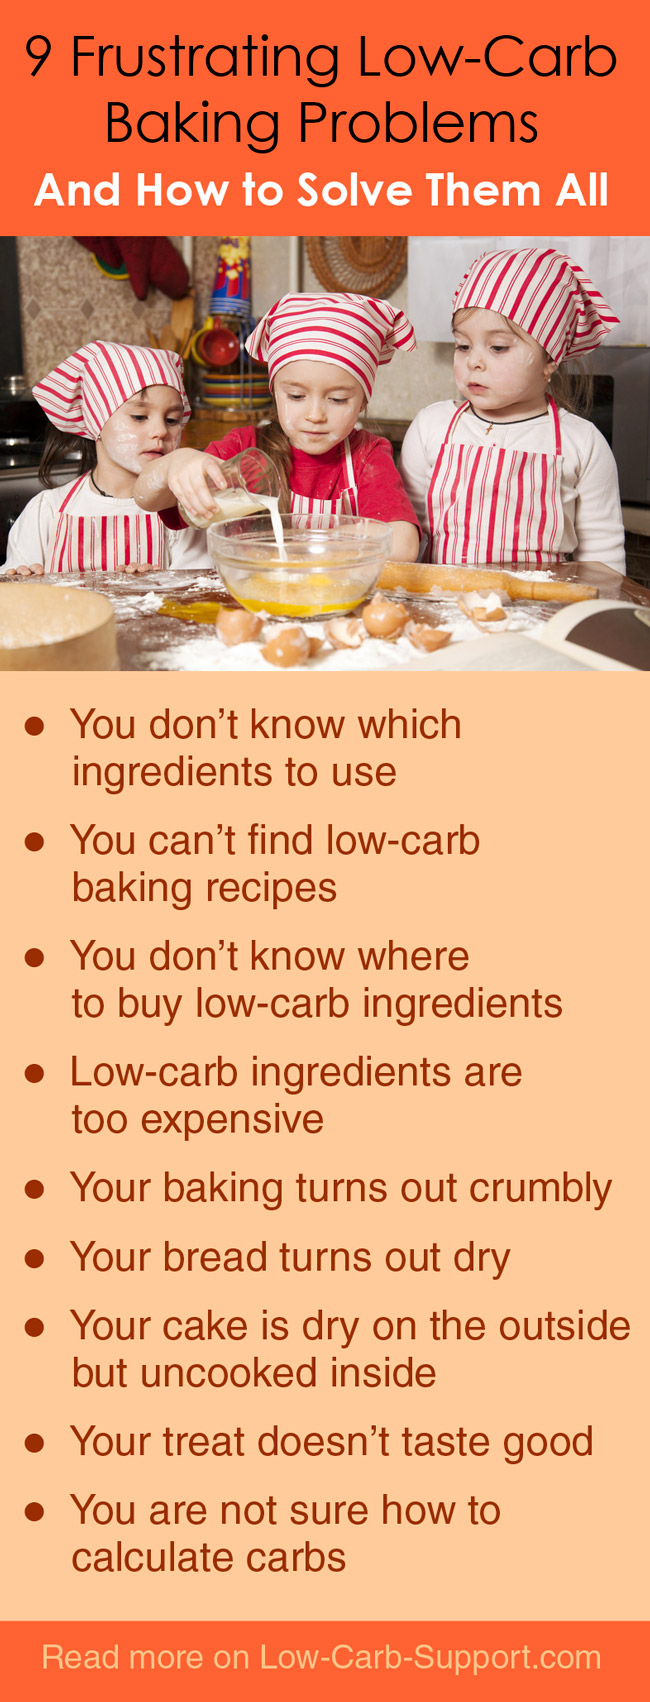 9 Low Carb Baking Problems and How To Solve Them